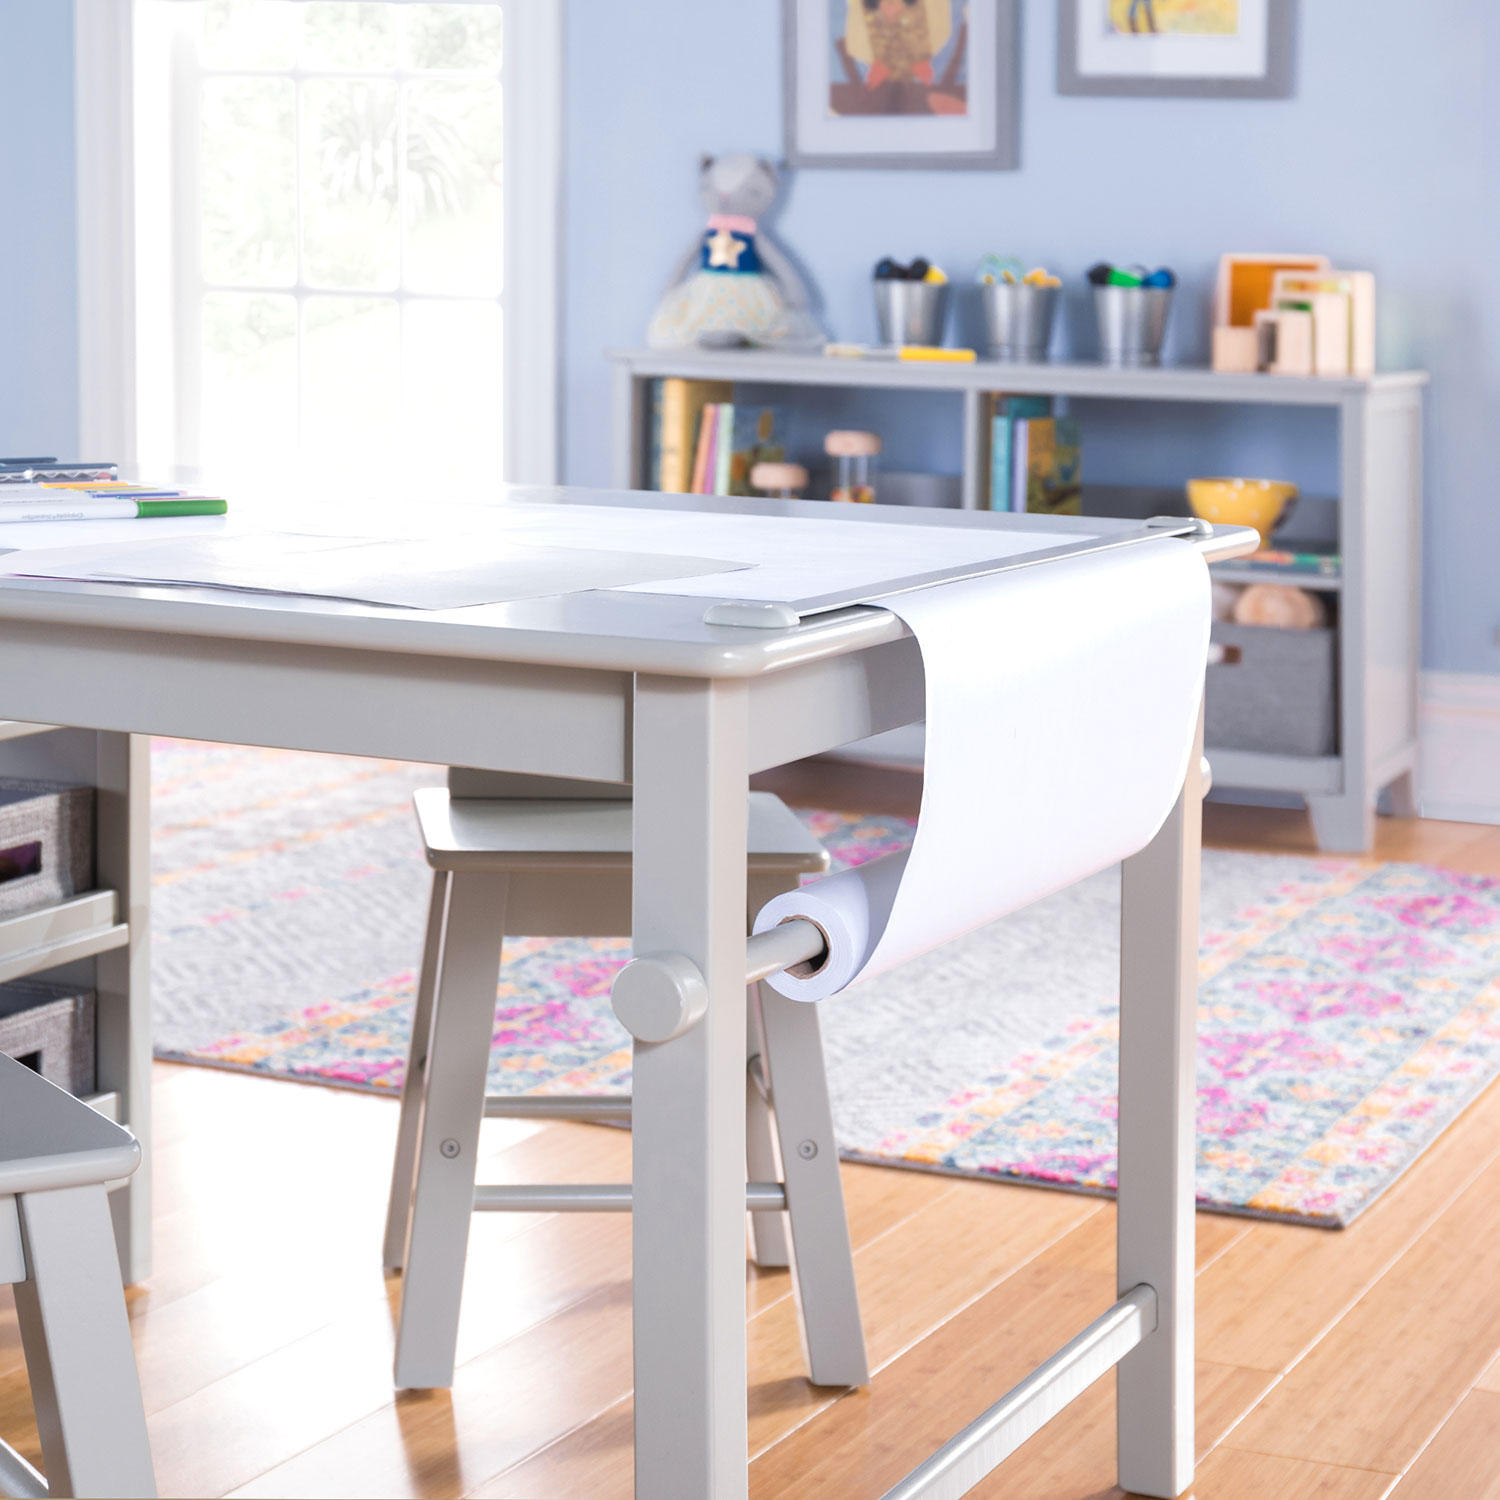 Martha Stewart Living and Learning Kids' Art Table and Stool Set